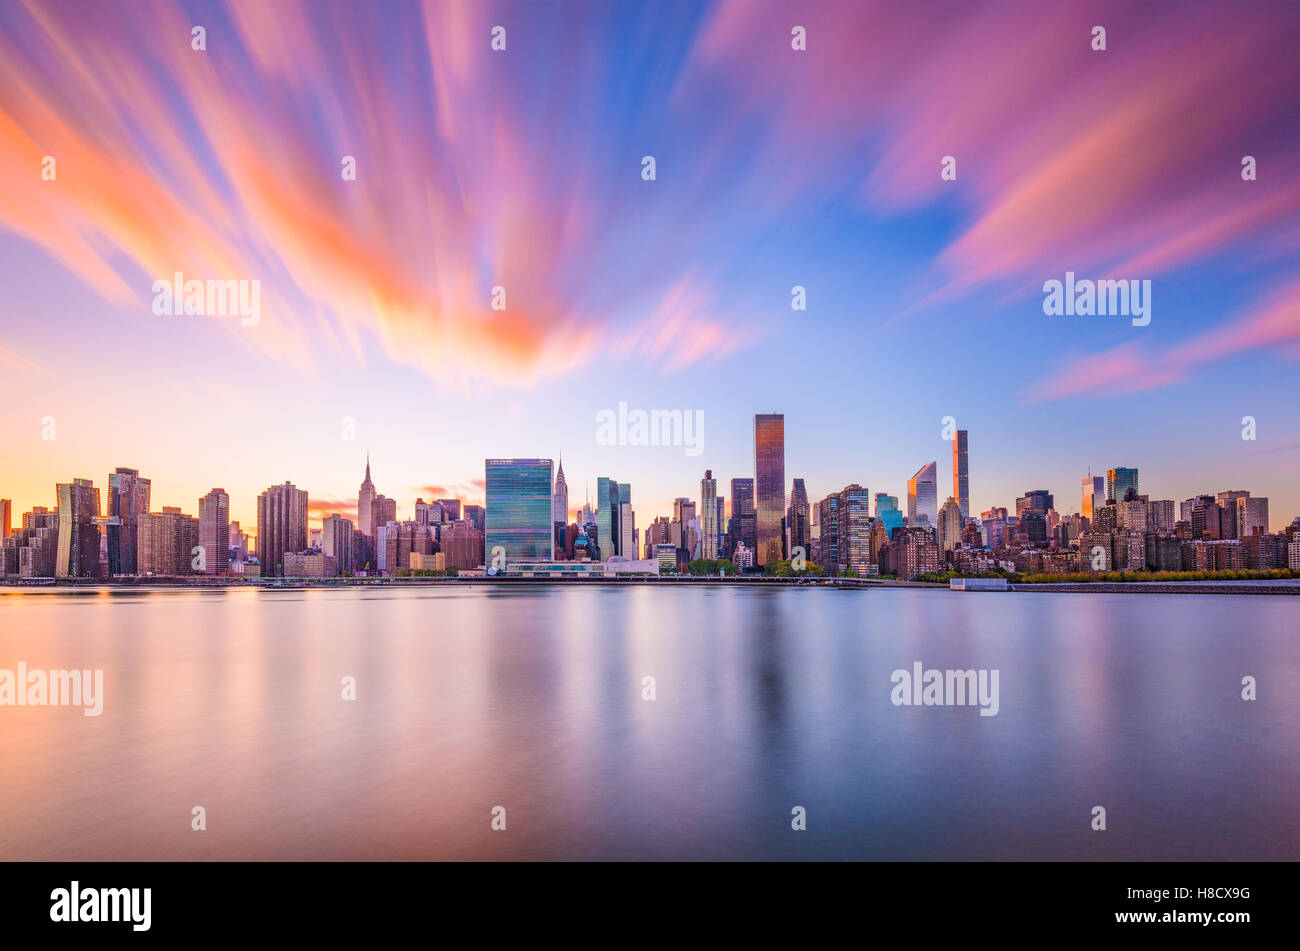 New York City skyline. - Stock Image